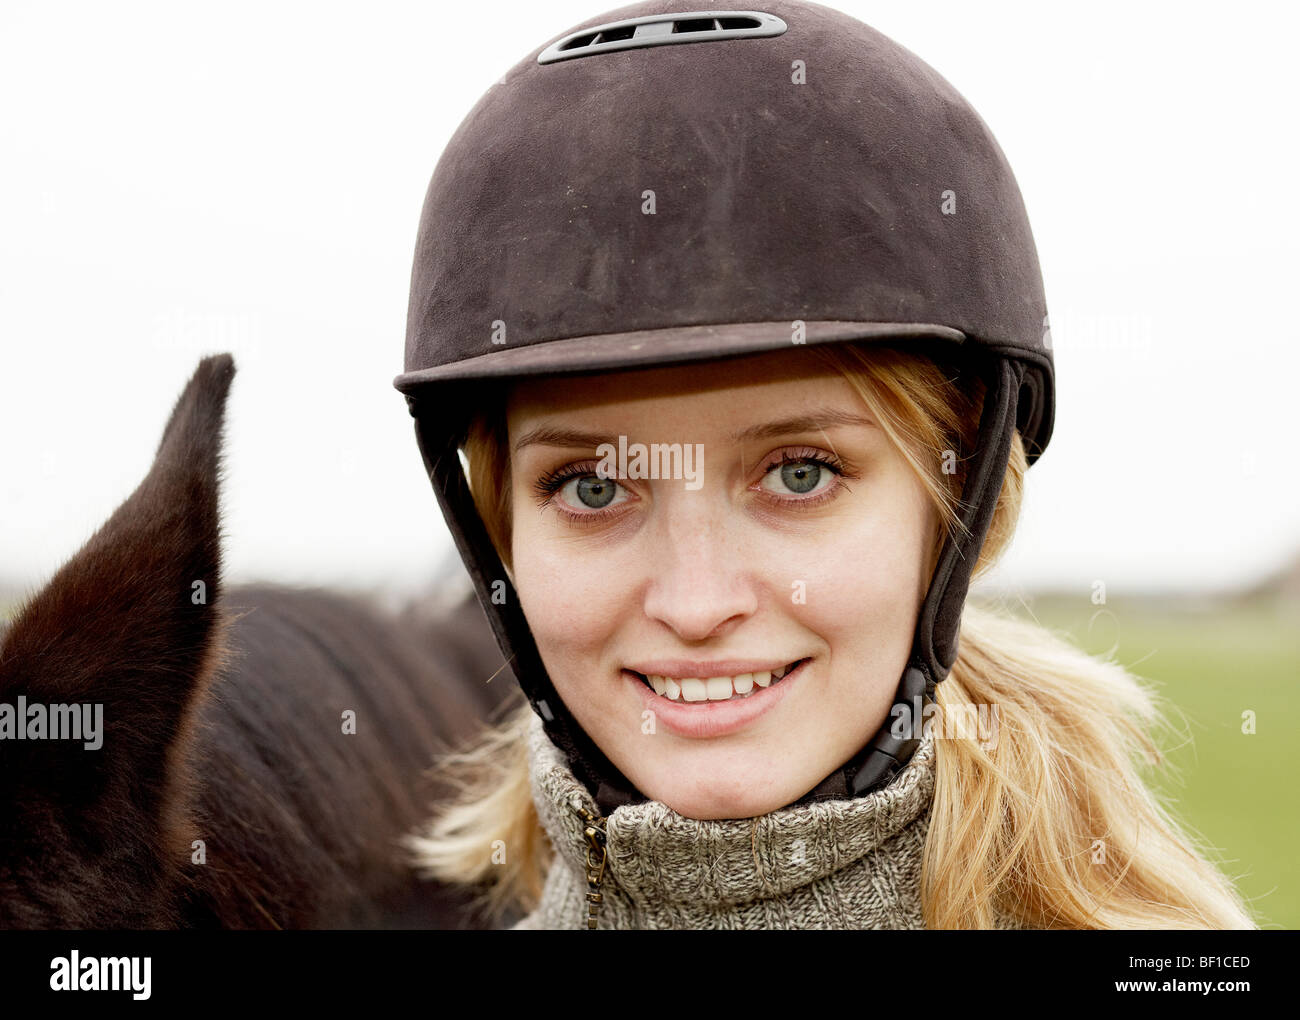 Portrait of a woman wearing a riding helmet, Sweden. - Stock Image